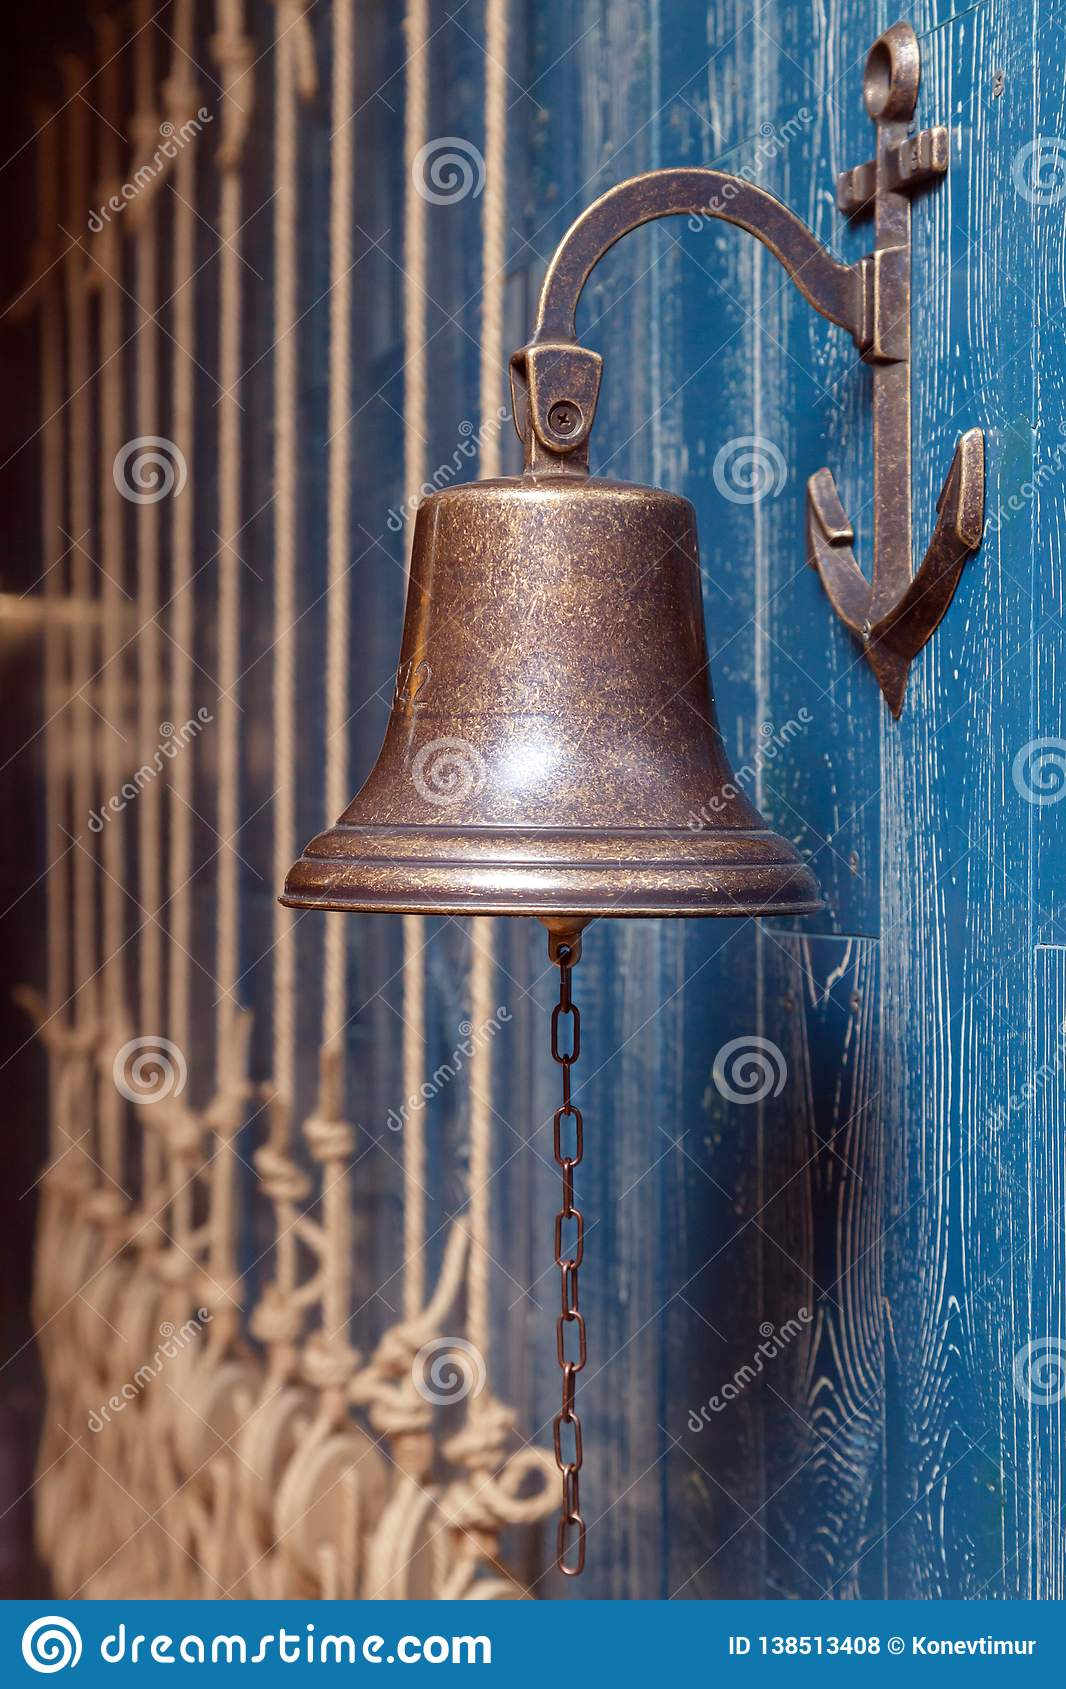 Copper old vintage bell, doorbell, rope on a wooden blue aged wall. Concept decor element in interior of deck, cabin of ship,